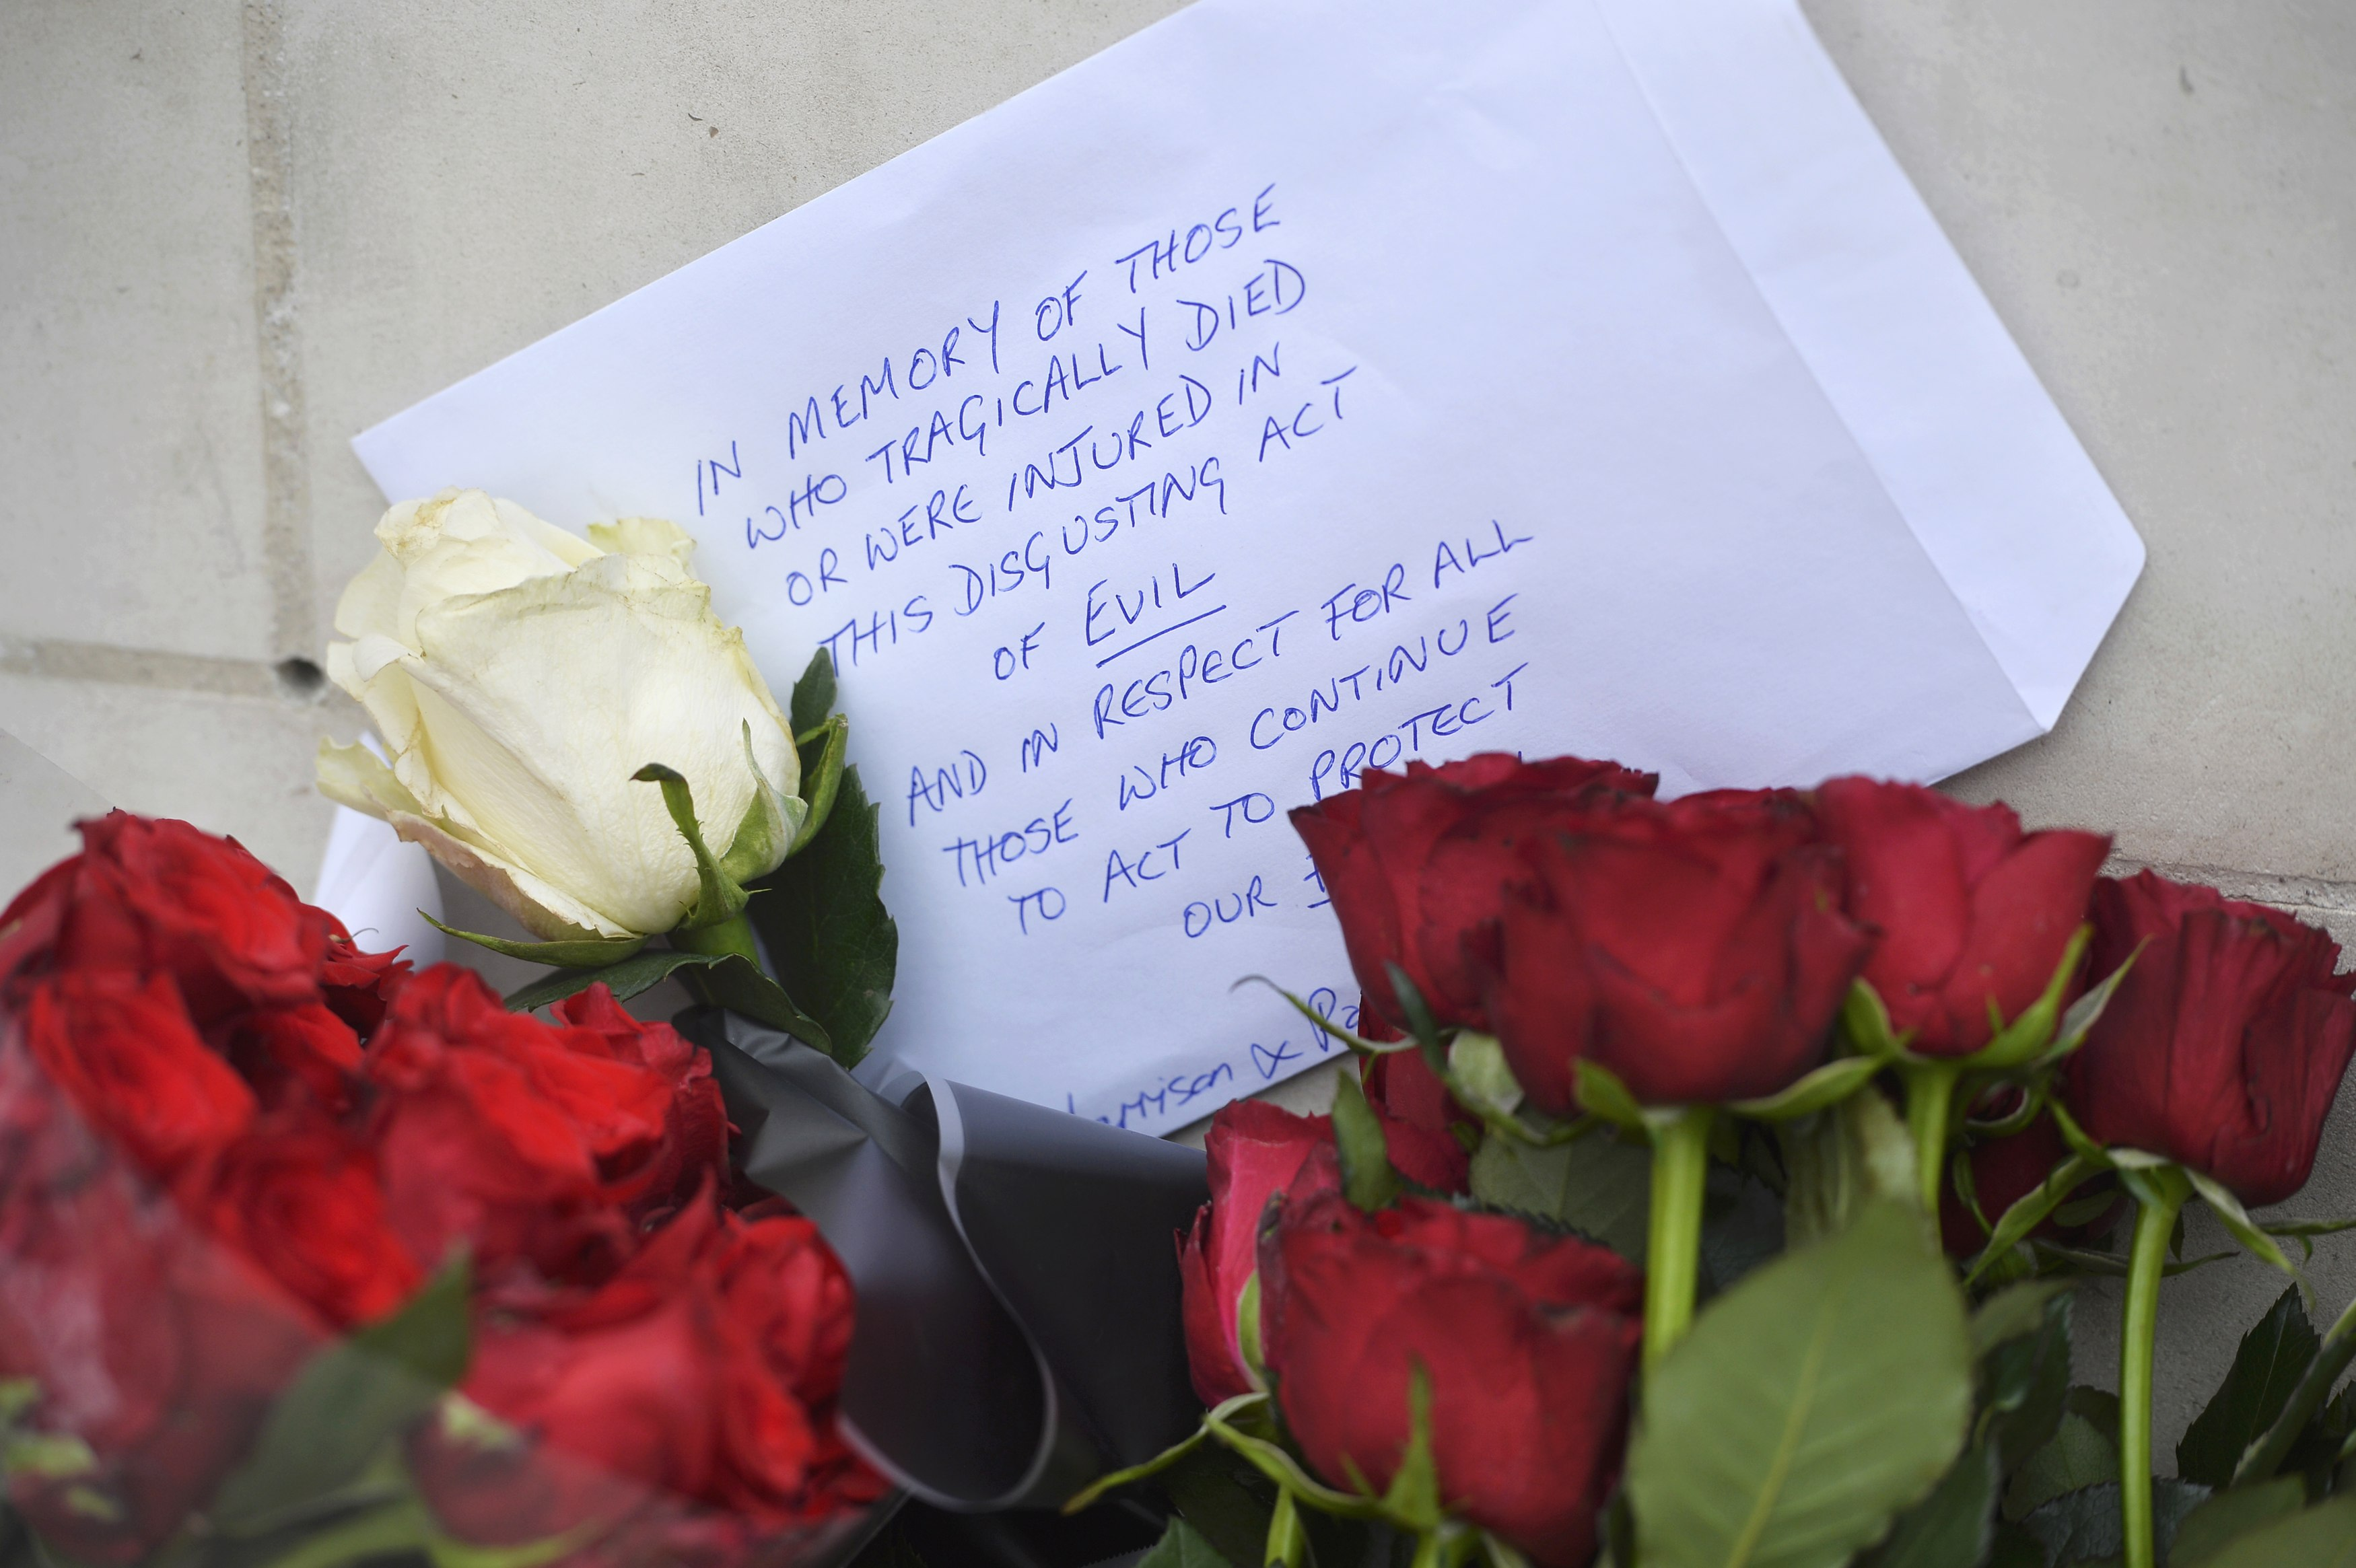 Flowers are left outside New Scotland Yard the morning after an attack in London, Britain on March 23, 2017. (REUTERS/Hannah McKay)